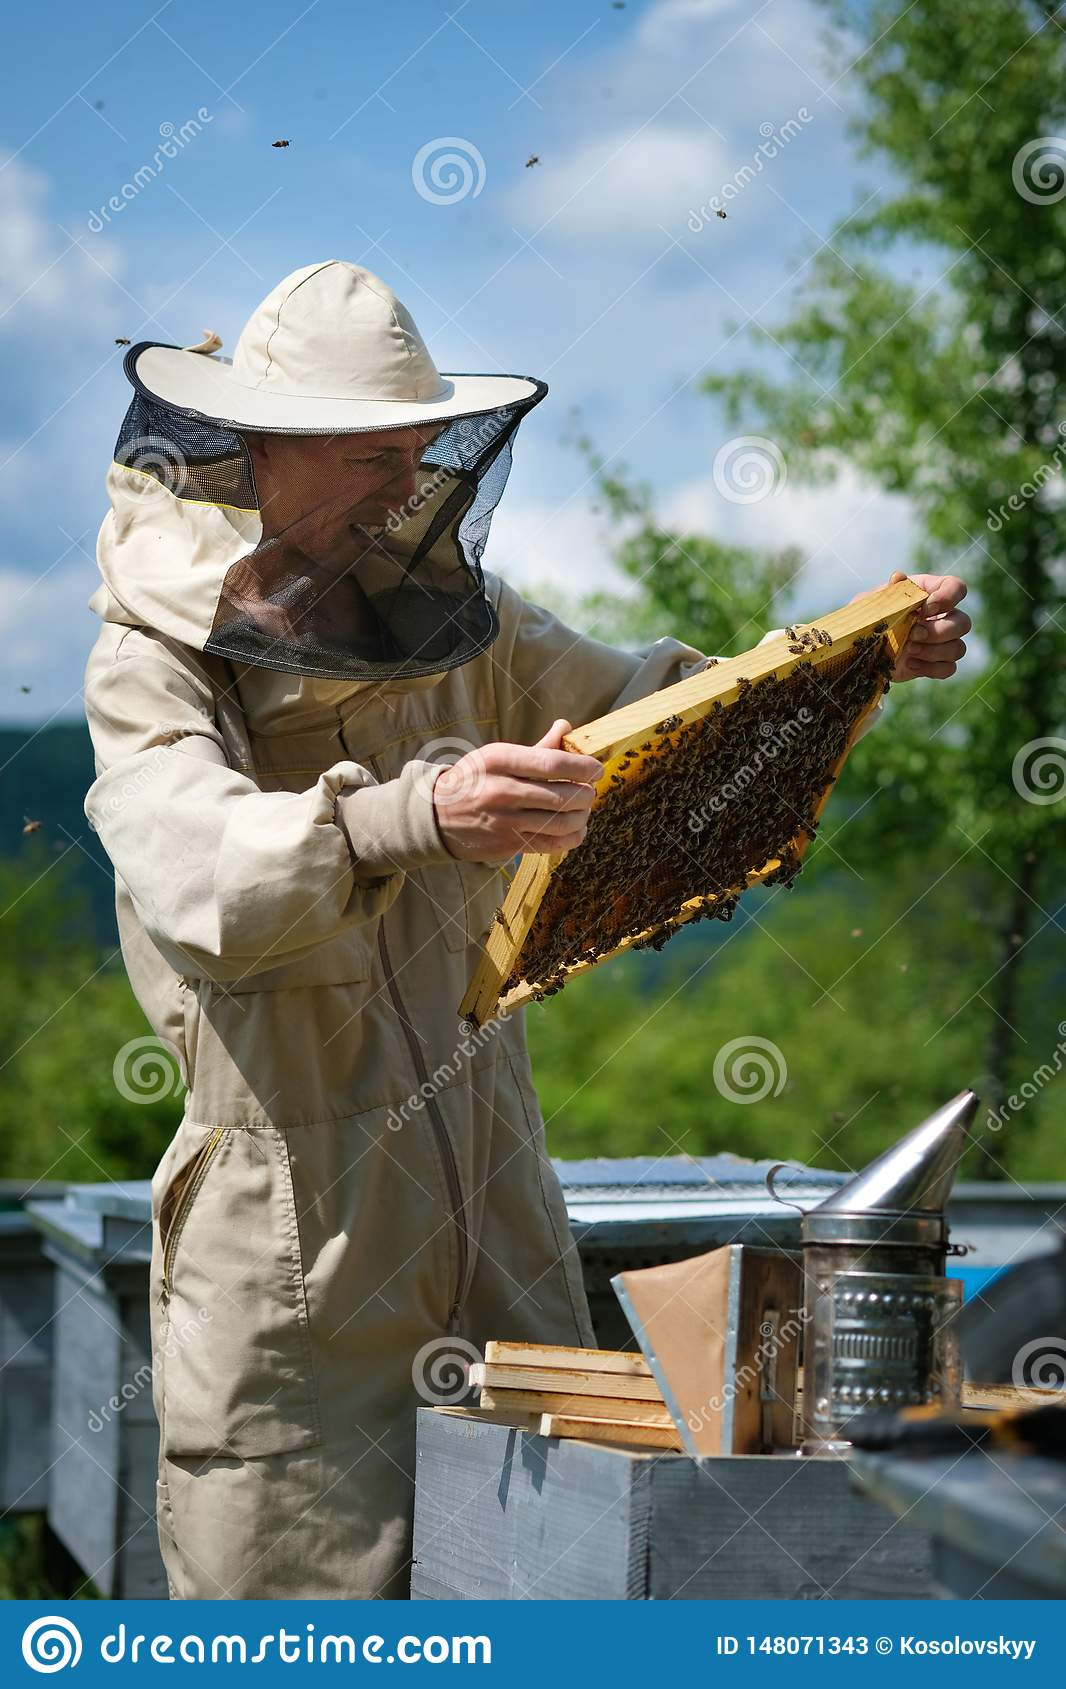 Beekeeper working collect honey. Apiary. Beekeeping concept.